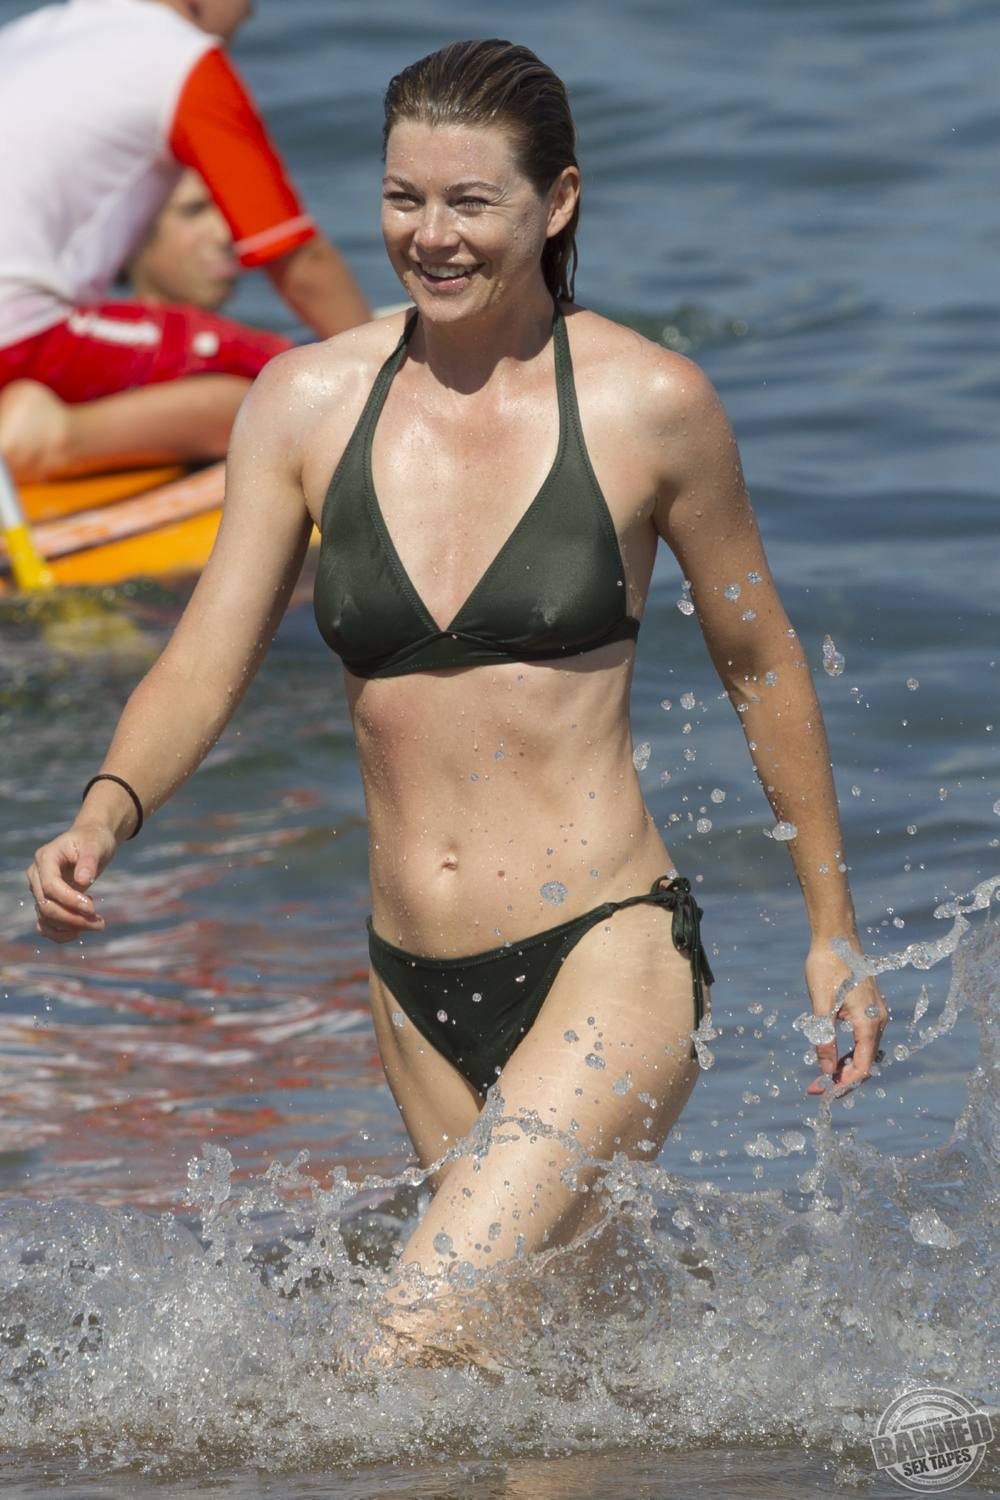 ellen pompeo fully naked at largest celebrities archive